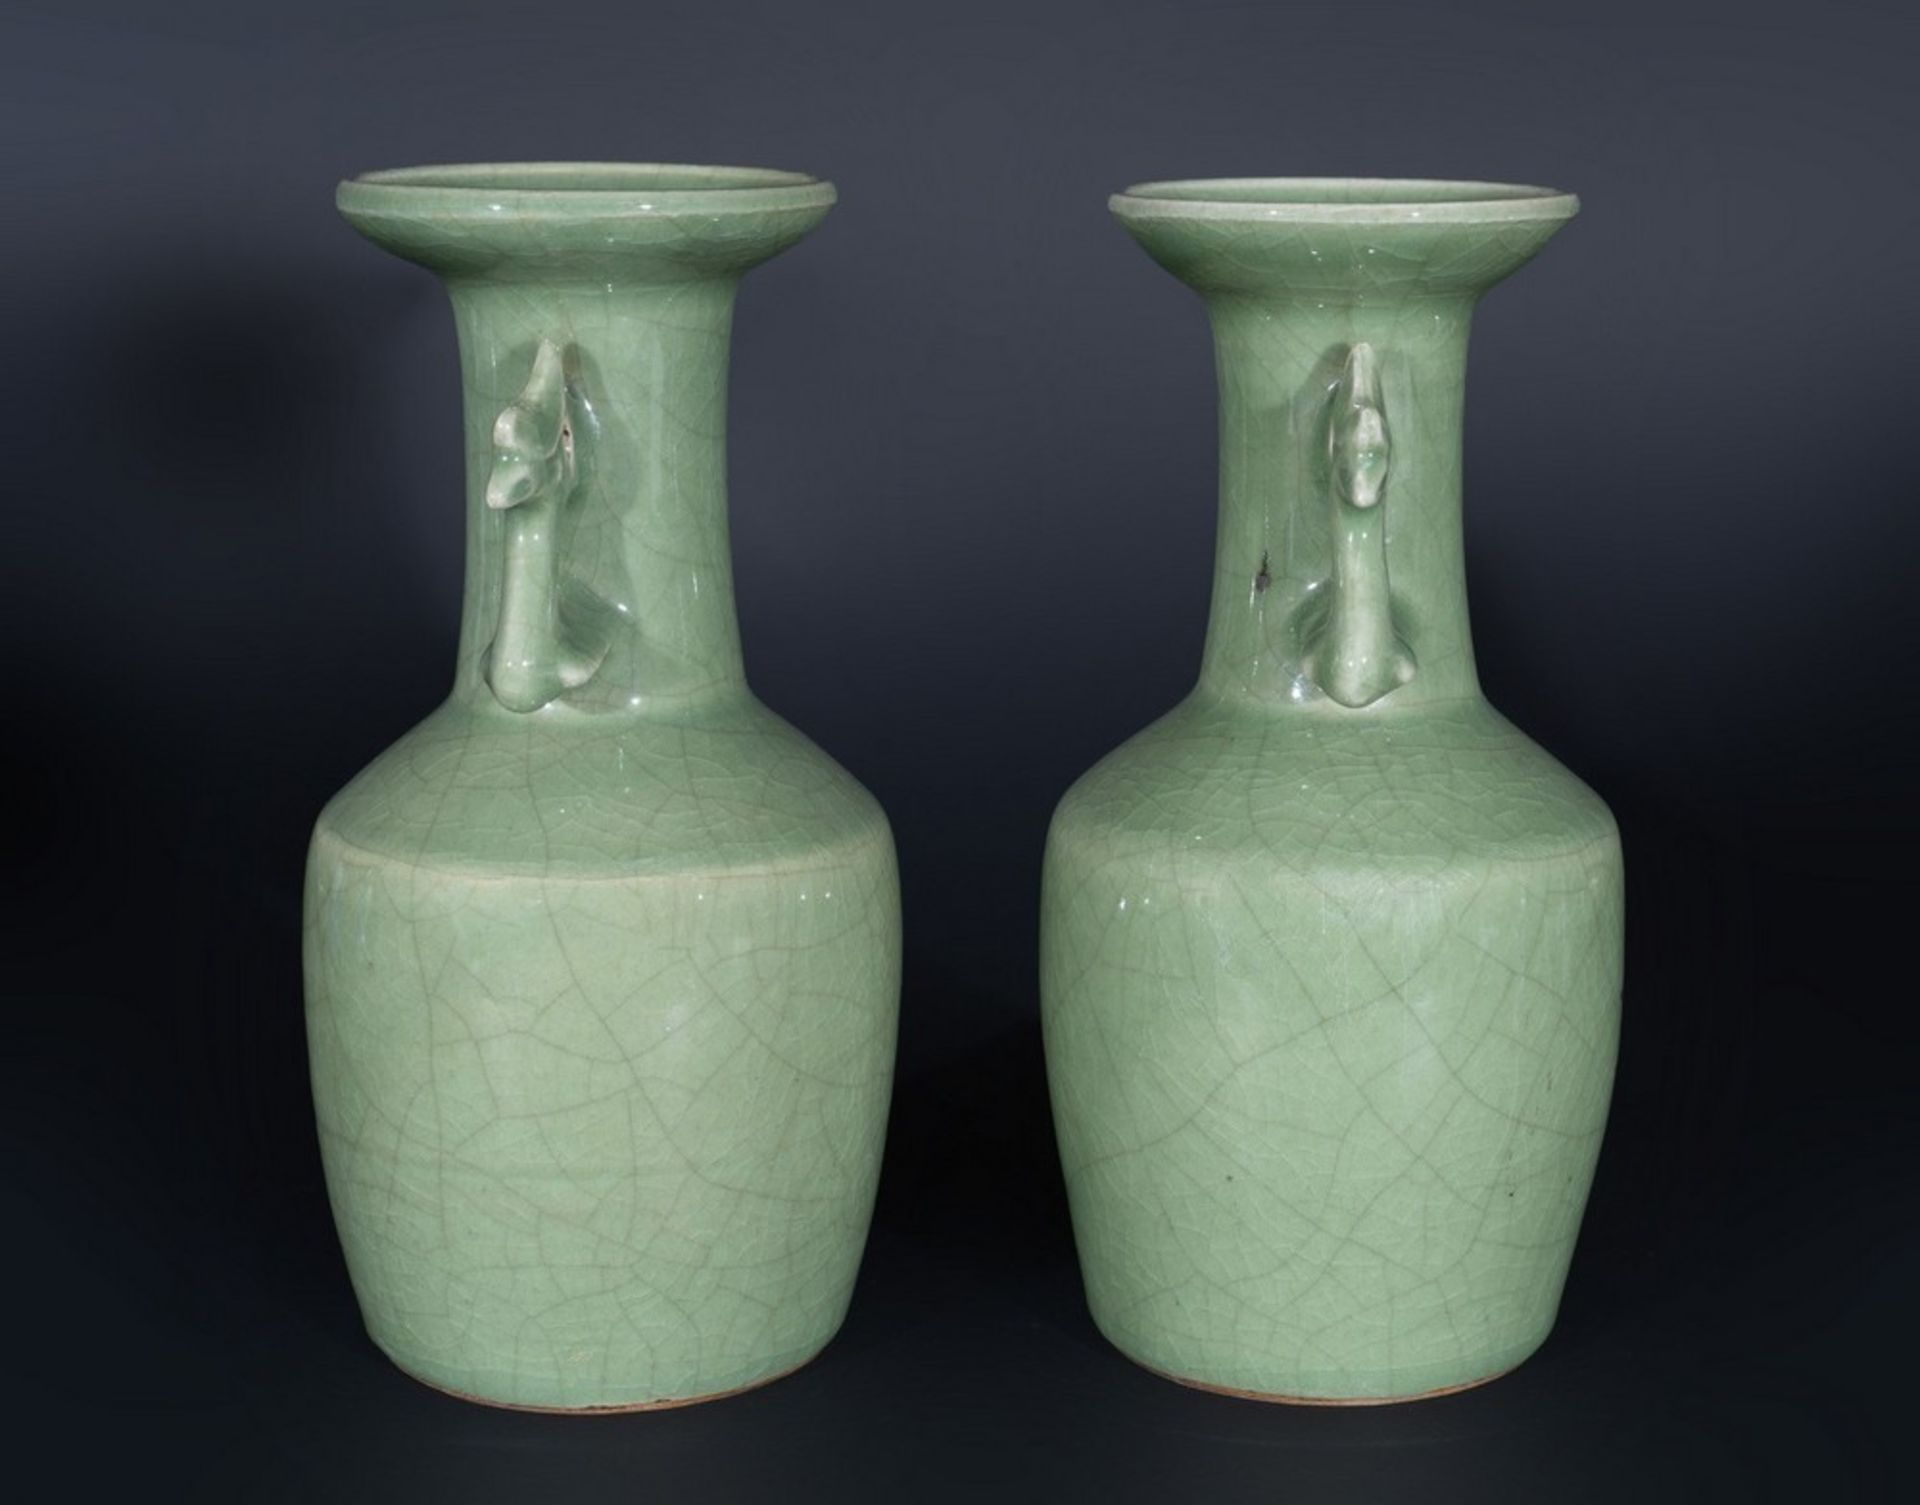 Arte Cinese A pair of celadon glazed pottery vases with zoomorphic handles China, Qing dynasty, 19t - Image 3 of 4